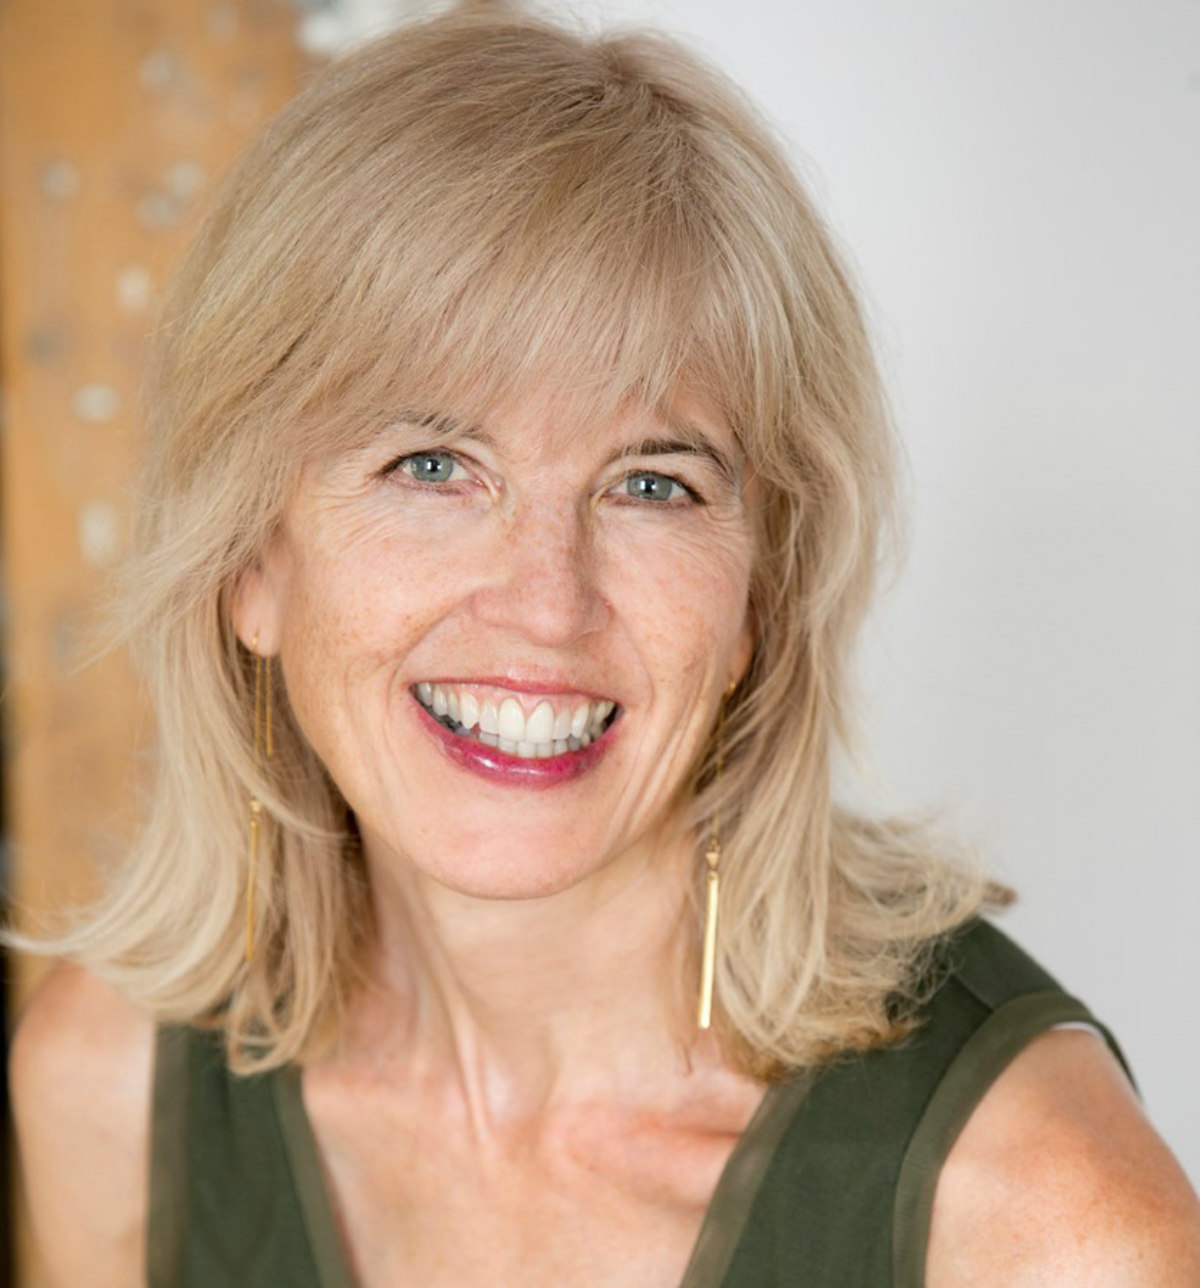 Alison McGhee, a white writer with short, blond hair, smiles for the camera